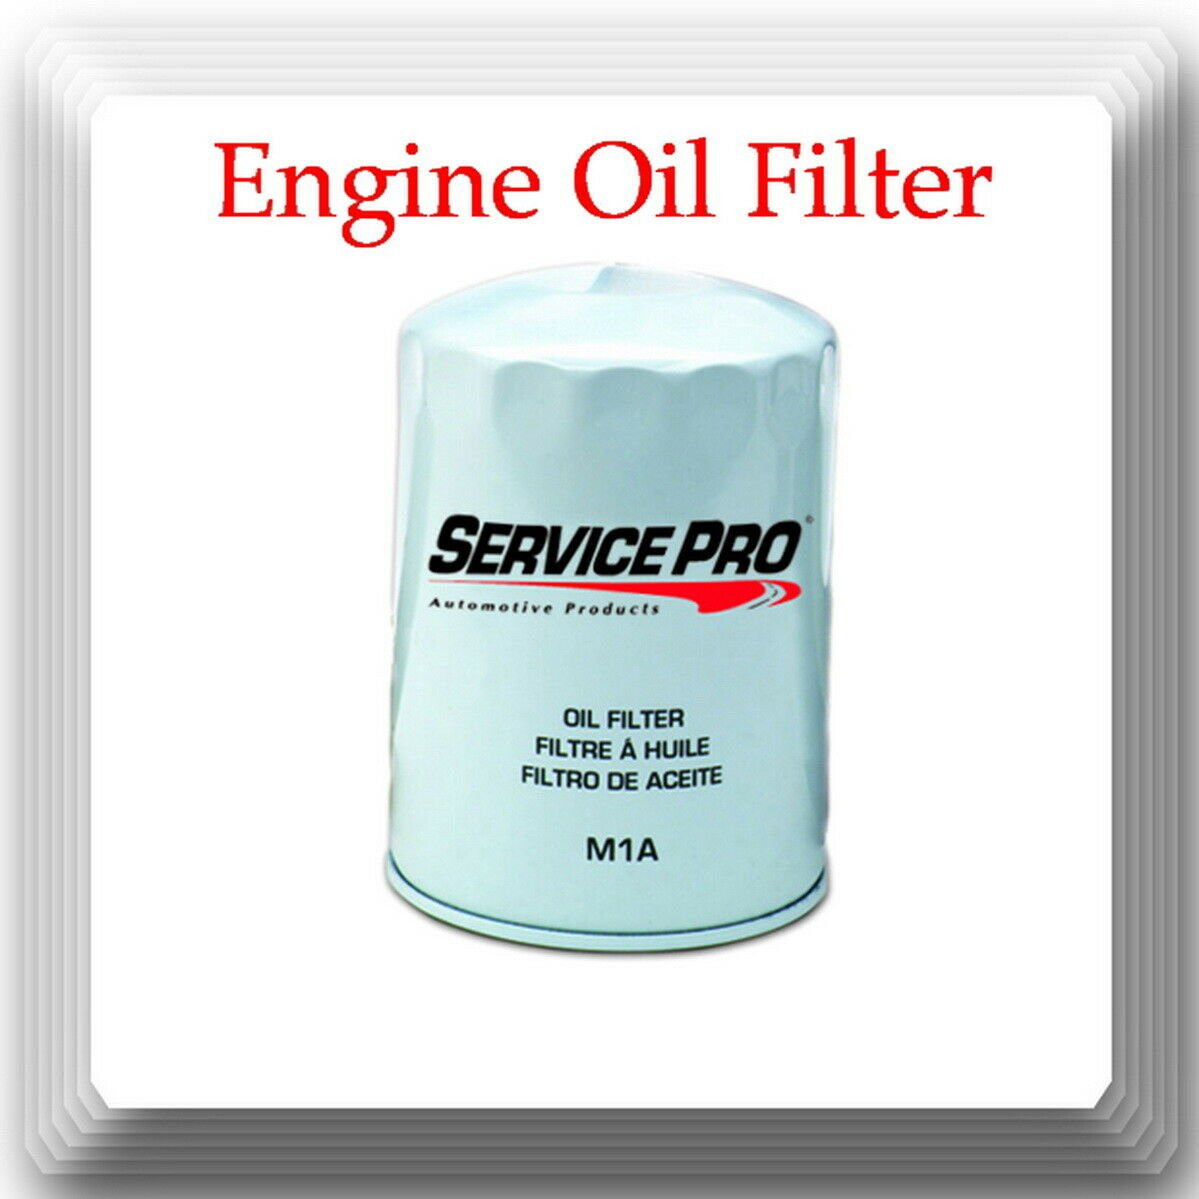 Eng Oil Filter Service Pro M1A Fits: Fram PH8A WIX 51515 GM Chrysler Ford Toyota